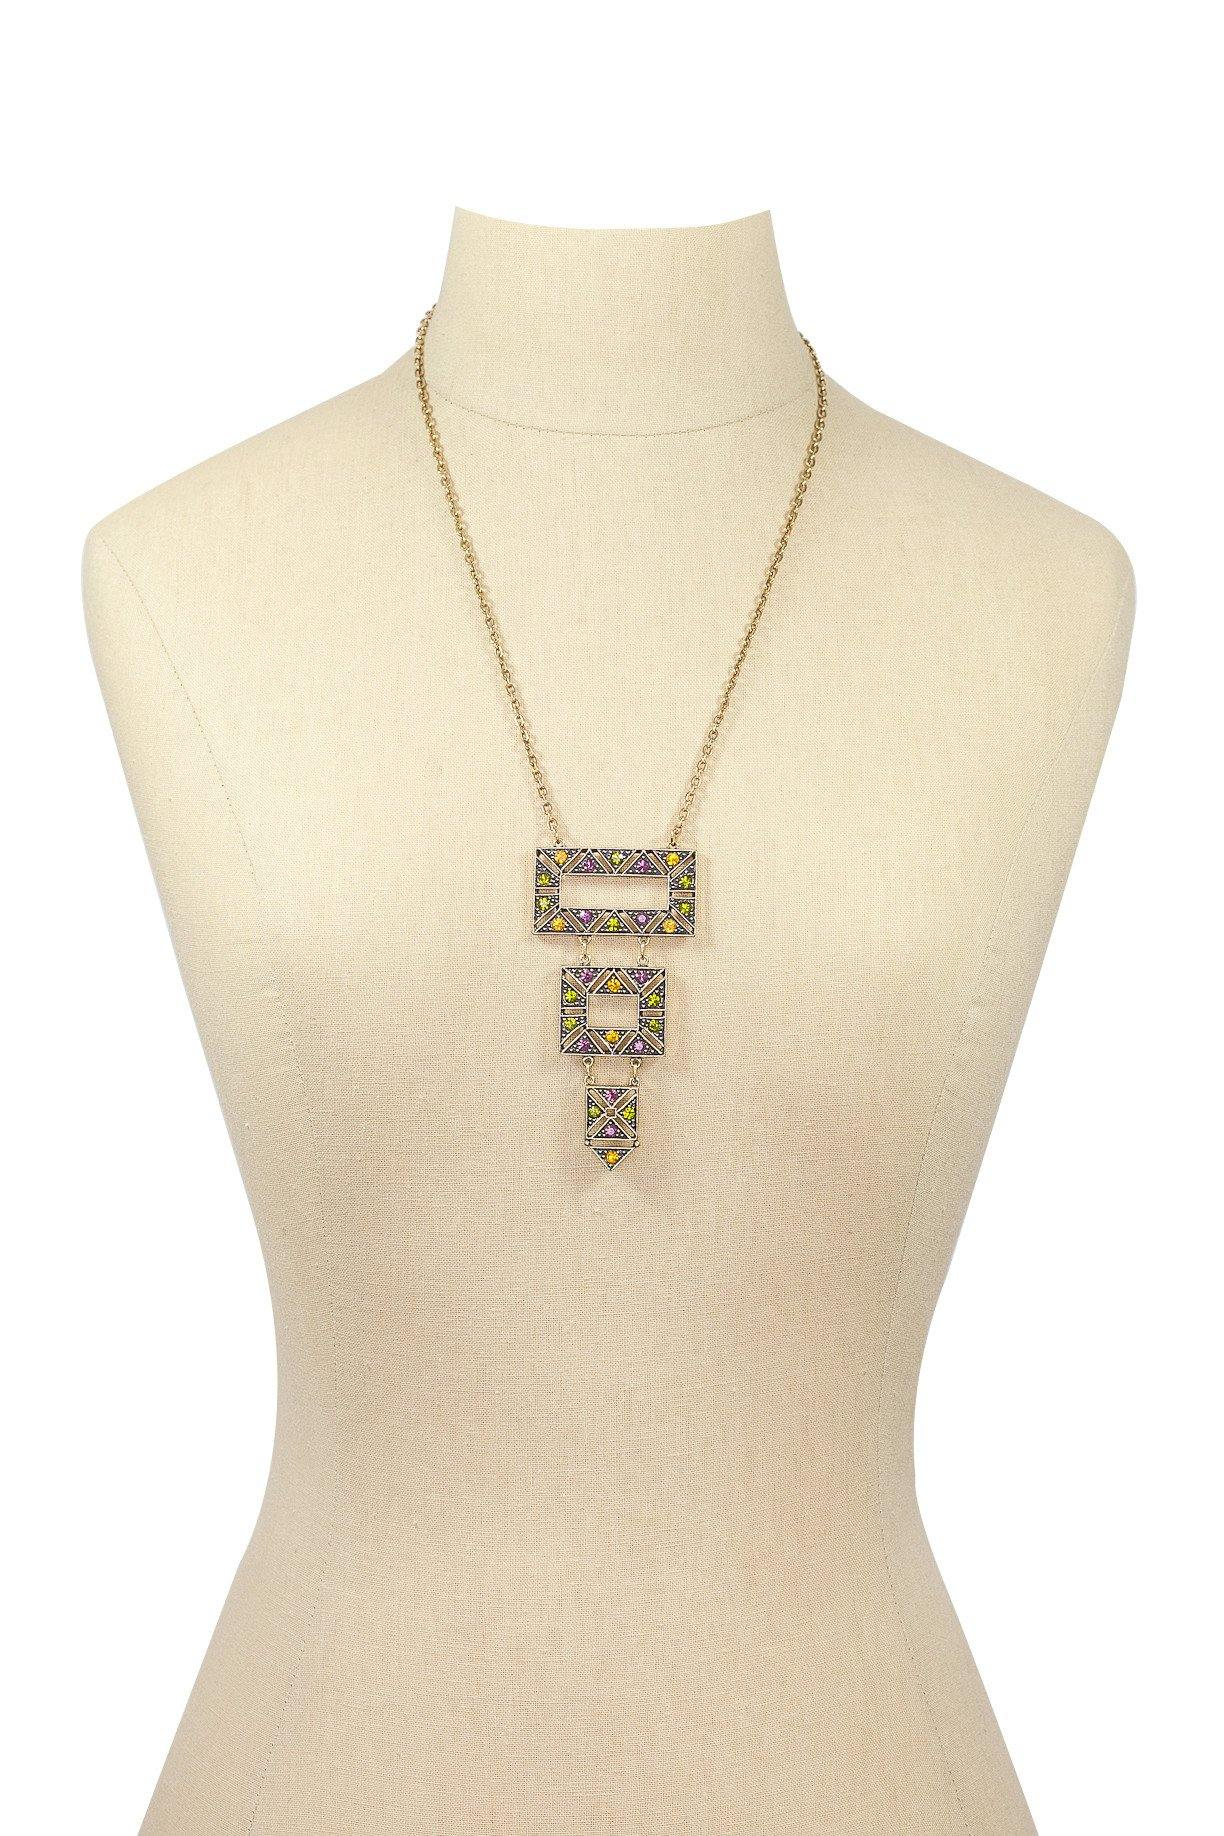 70's__Emmons__Embellished Pendant Necklace